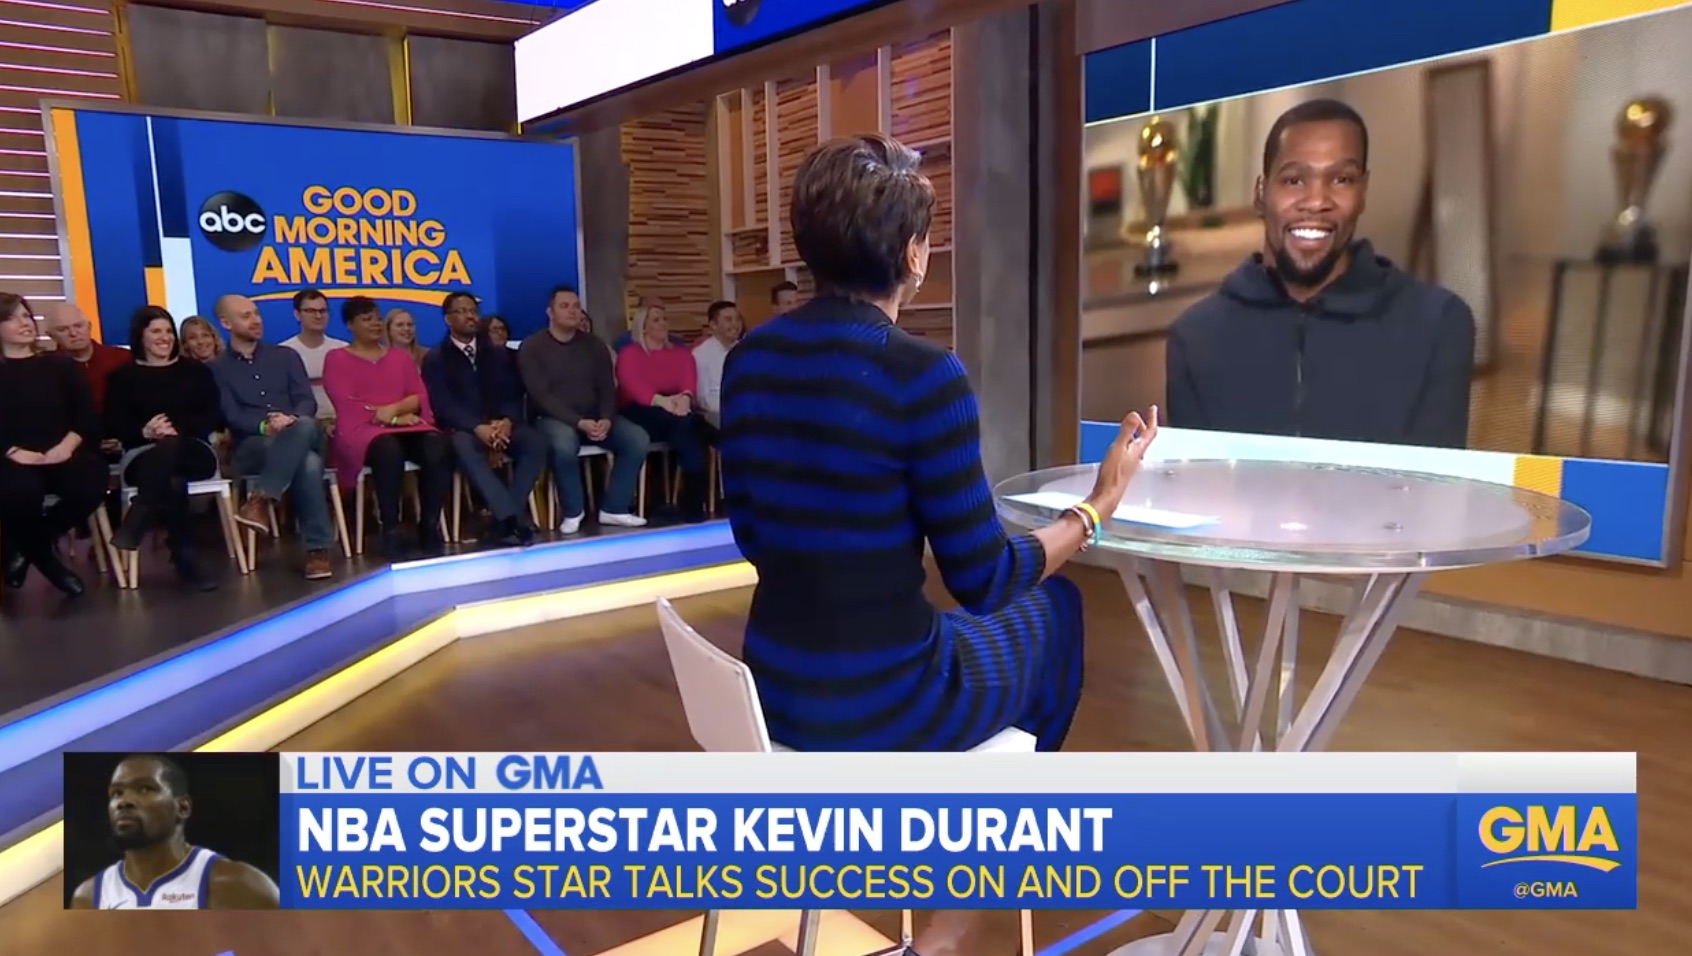 WATCH: Kevin Durant Opens Up About his New ESPN Series, College Program and Championships